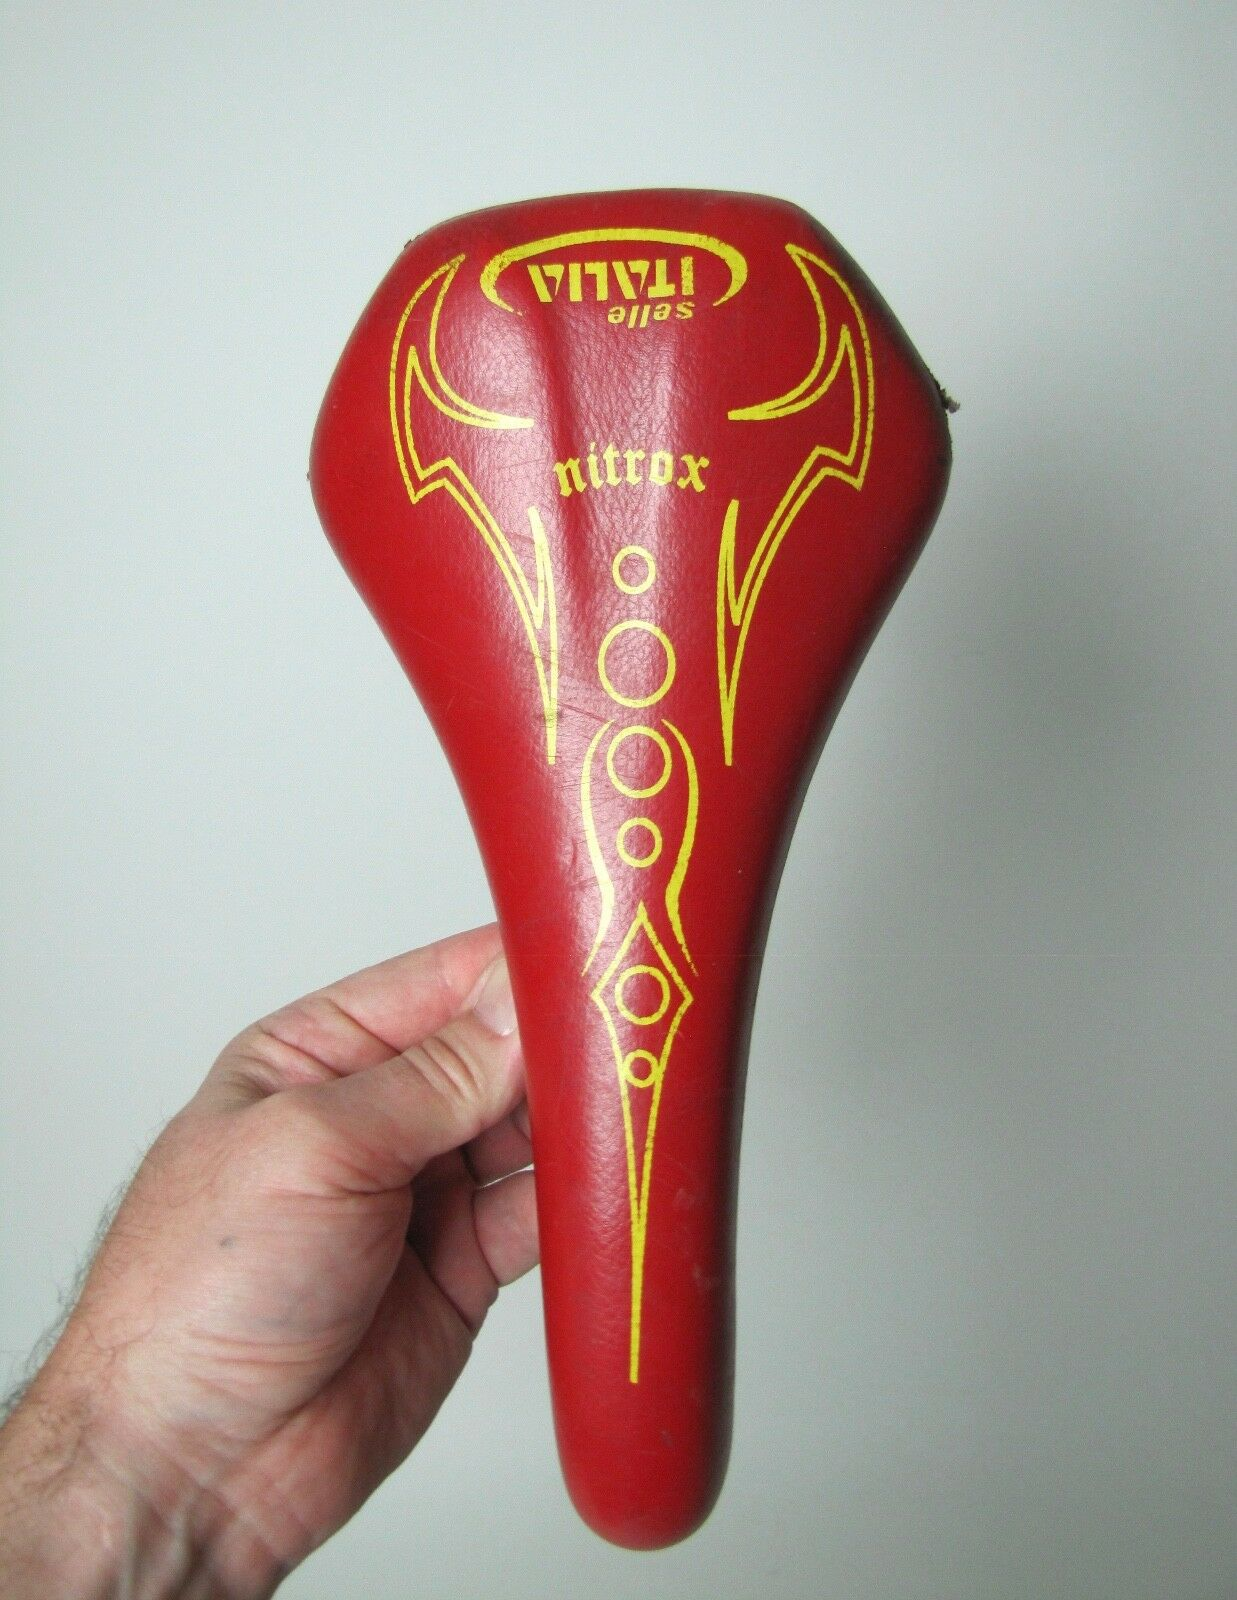 Vintage Red Selle Italia Nitrox bike  seat Road Bike  with 100% quality and %100 service